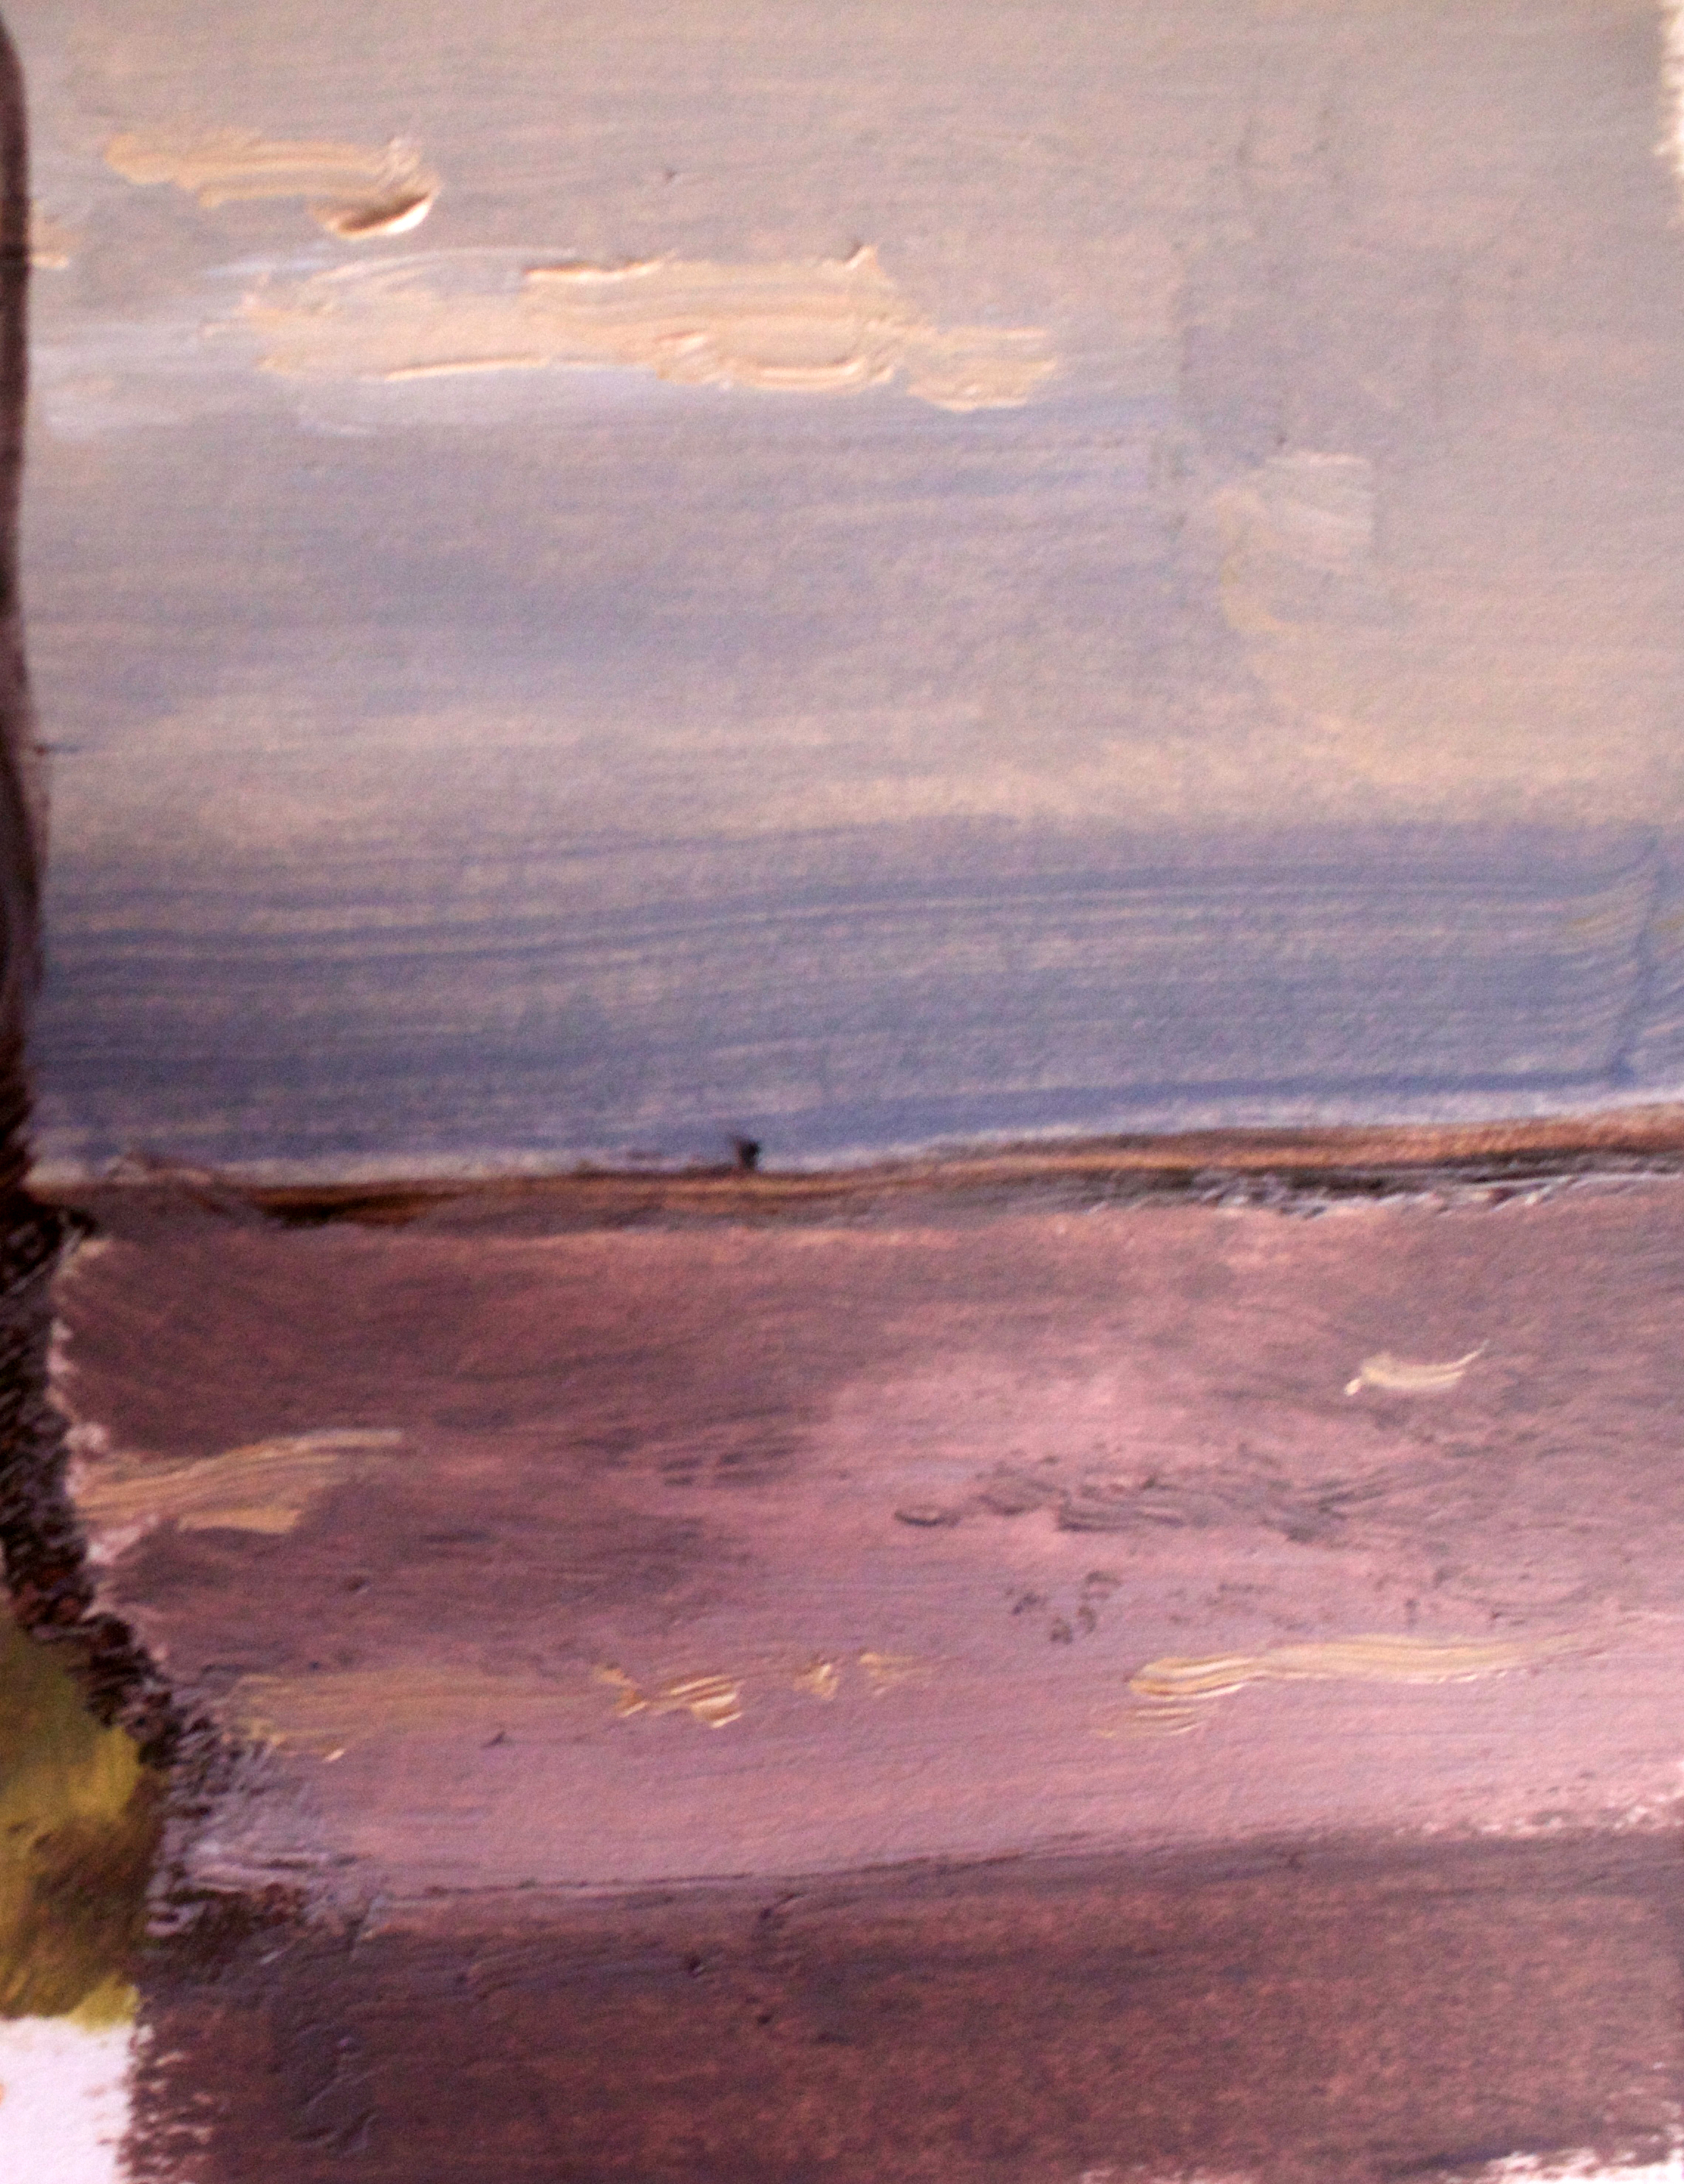 Ocean View Red and Orange Hue 25 Oct 2018 Oil on panel